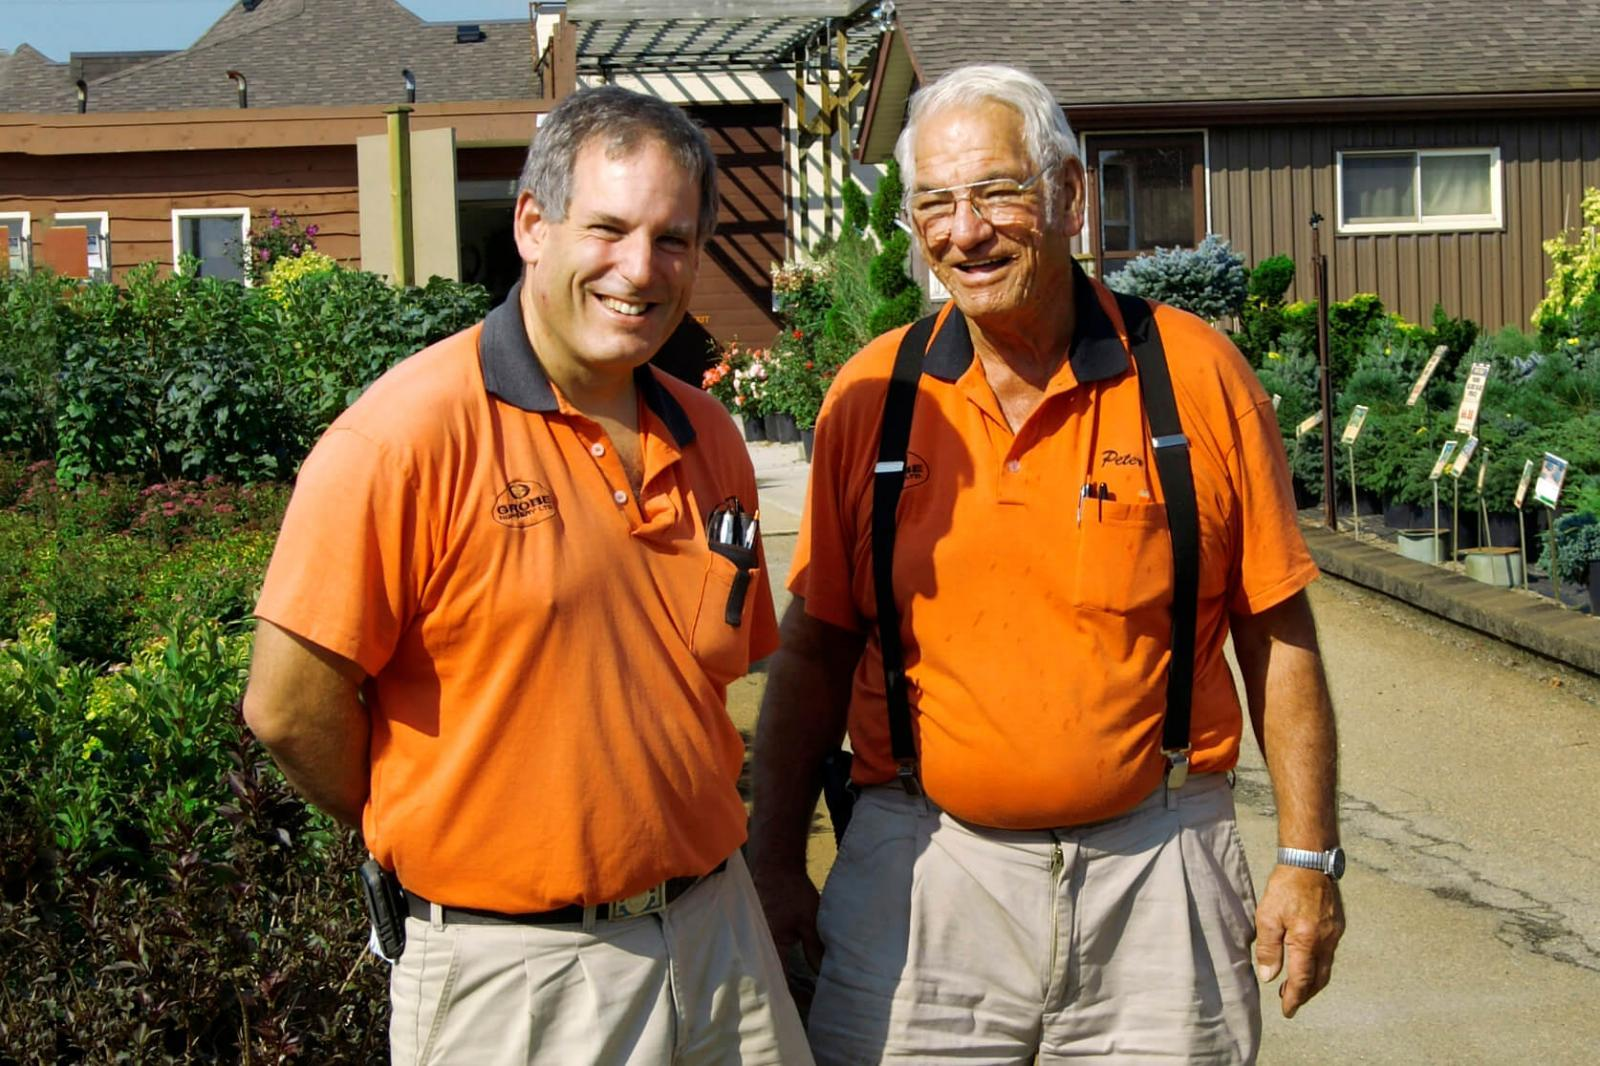 Son and father, Perry and Peter Grobe, are proud of their business's growth over the past 50 years.